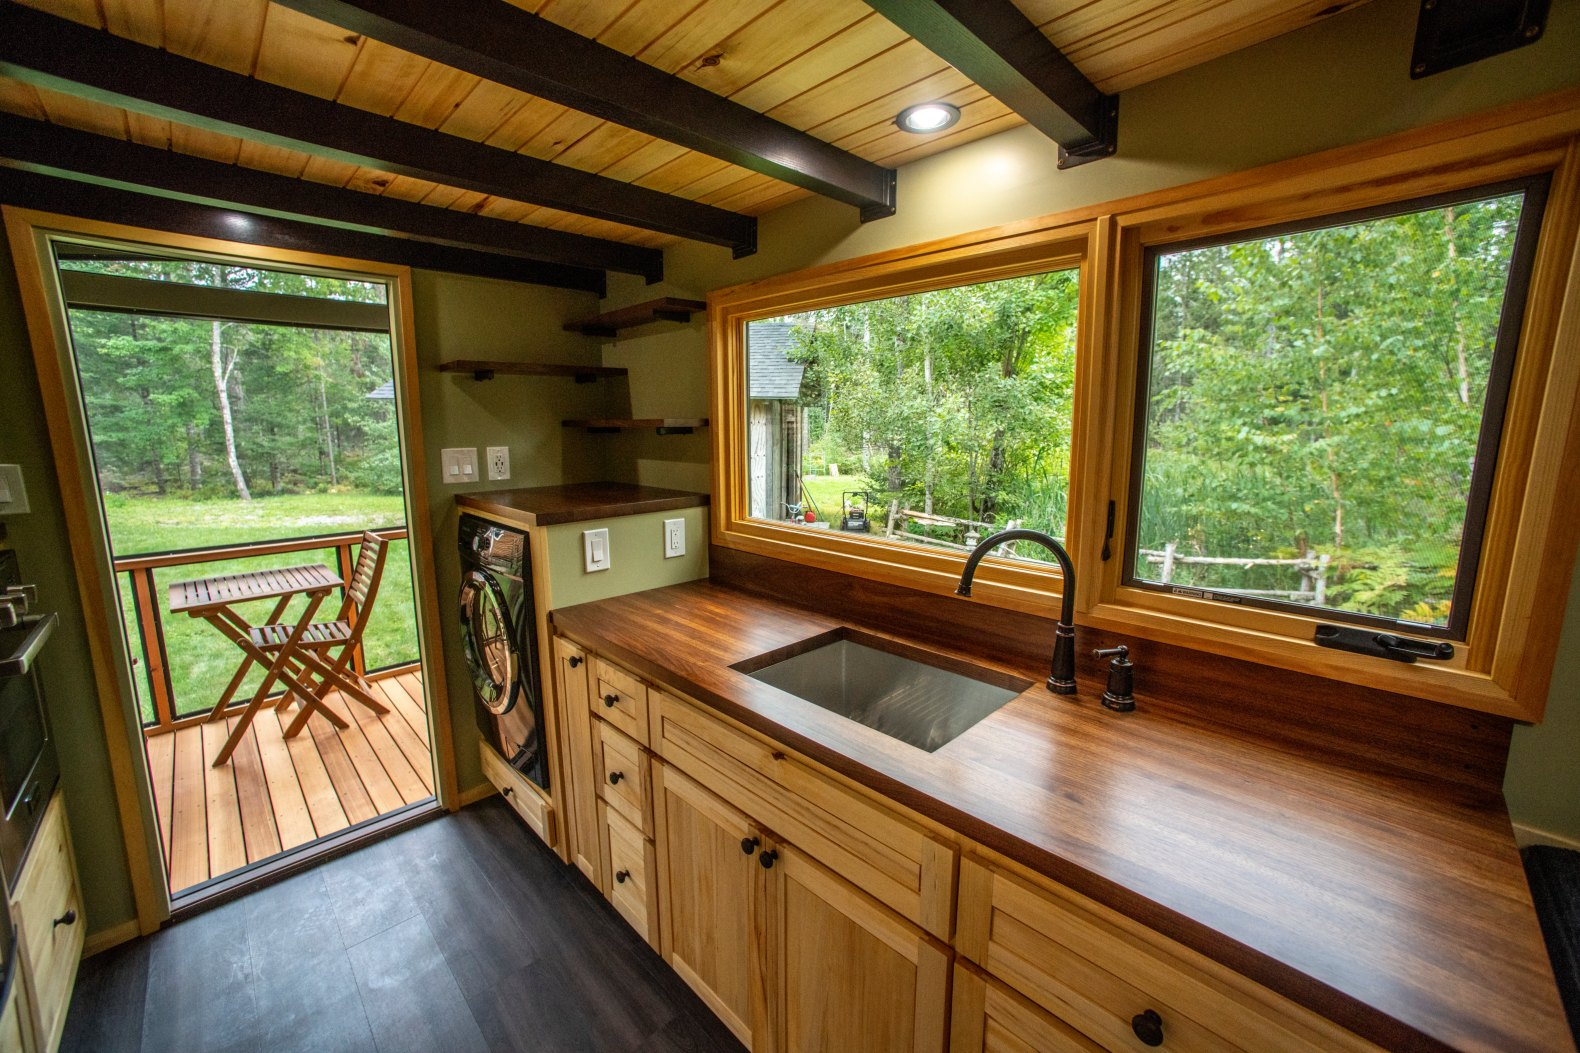 Veteran carpenter builds gorgeous tiny home that boasts impressive wood working and screened-in porch